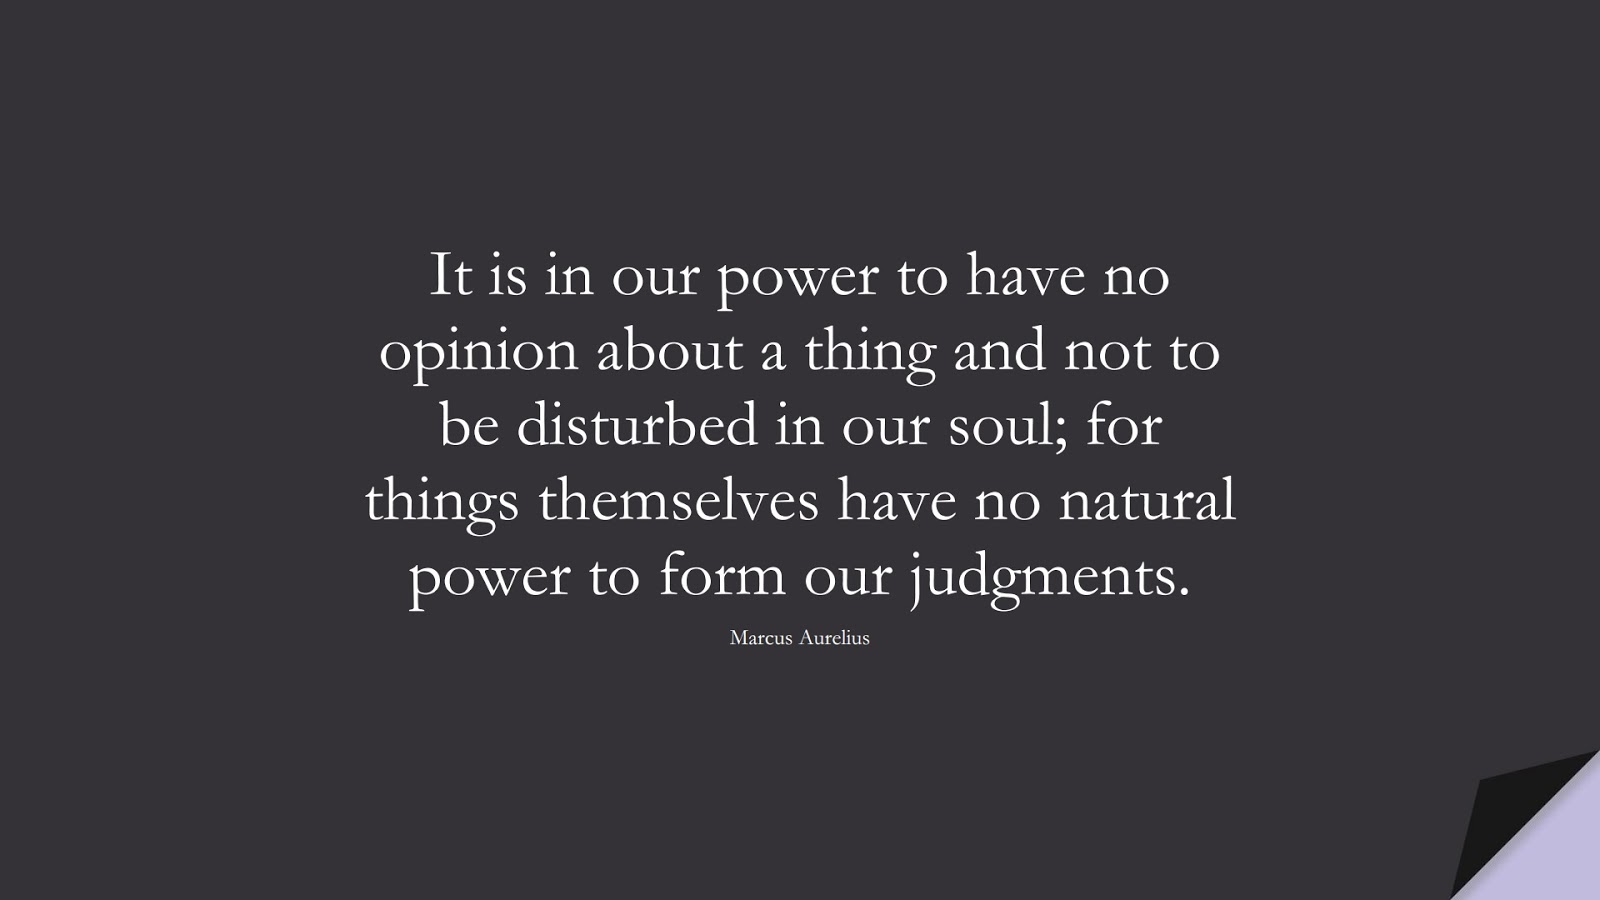 It is in our power to have no opinion about a thing and not to be disturbed in our soul; for things themselves have no natural power to form our judgments. (Marcus Aurelius);  #MarcusAureliusQuotes